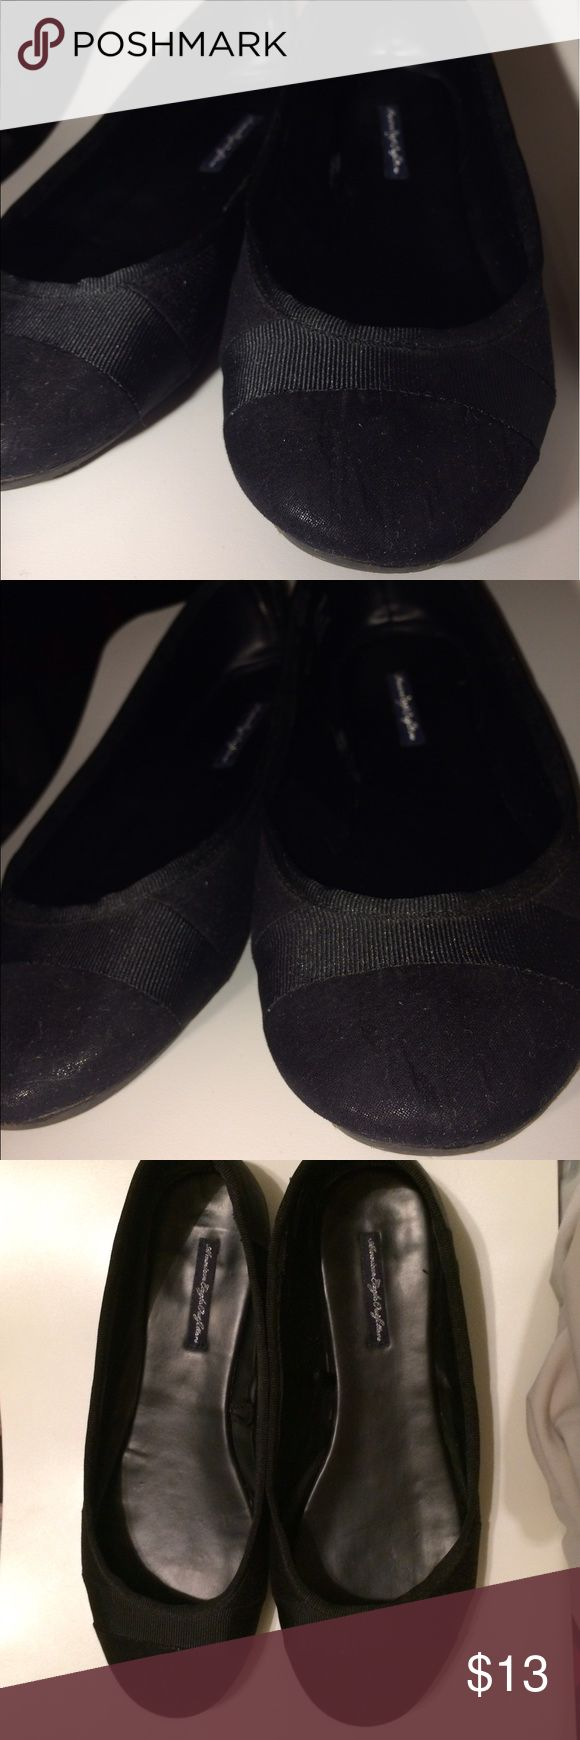 American Eagle Black Flat Shoes 🆓B2G1🆓 American Eagle Outfitters Black Flat shoes.      EUC on the insole and exterior of shoes. Some wear on the soles. Price reflects. American Eagle Outfitters Shoes Flats & Loafers